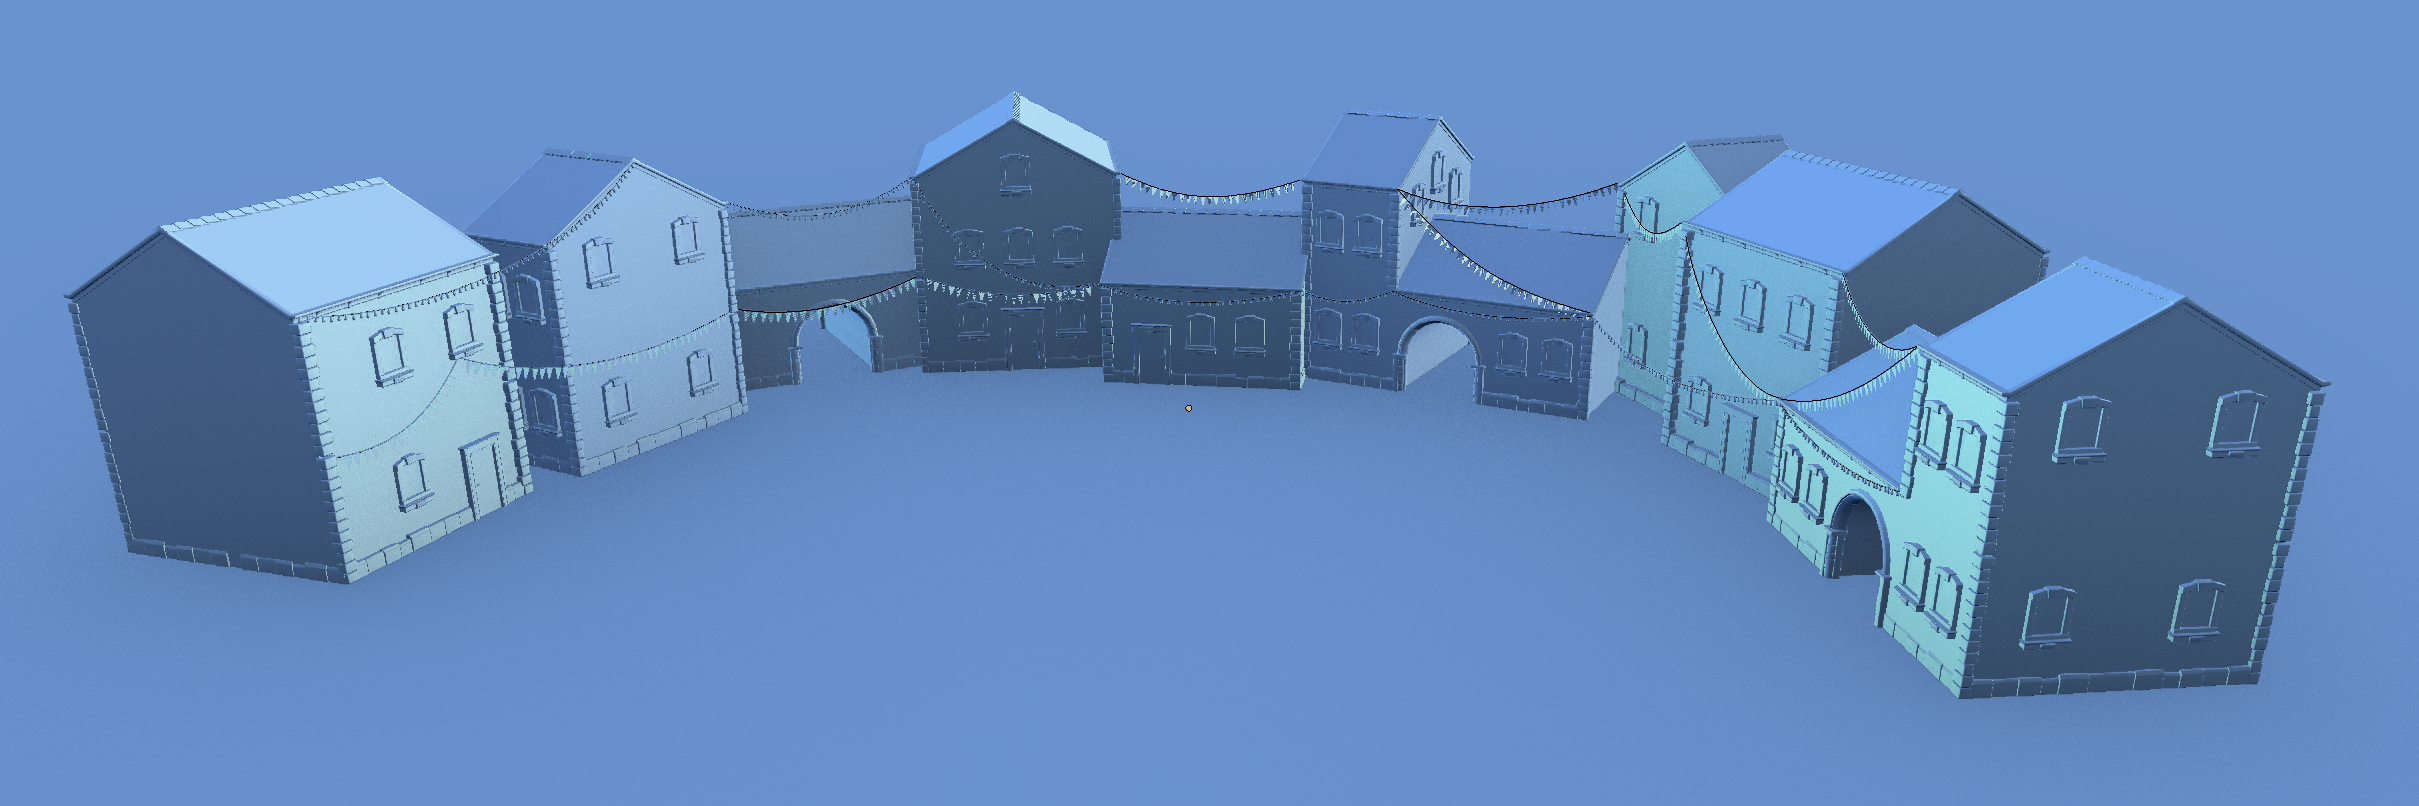 Background buildings in their assembled state without textures.